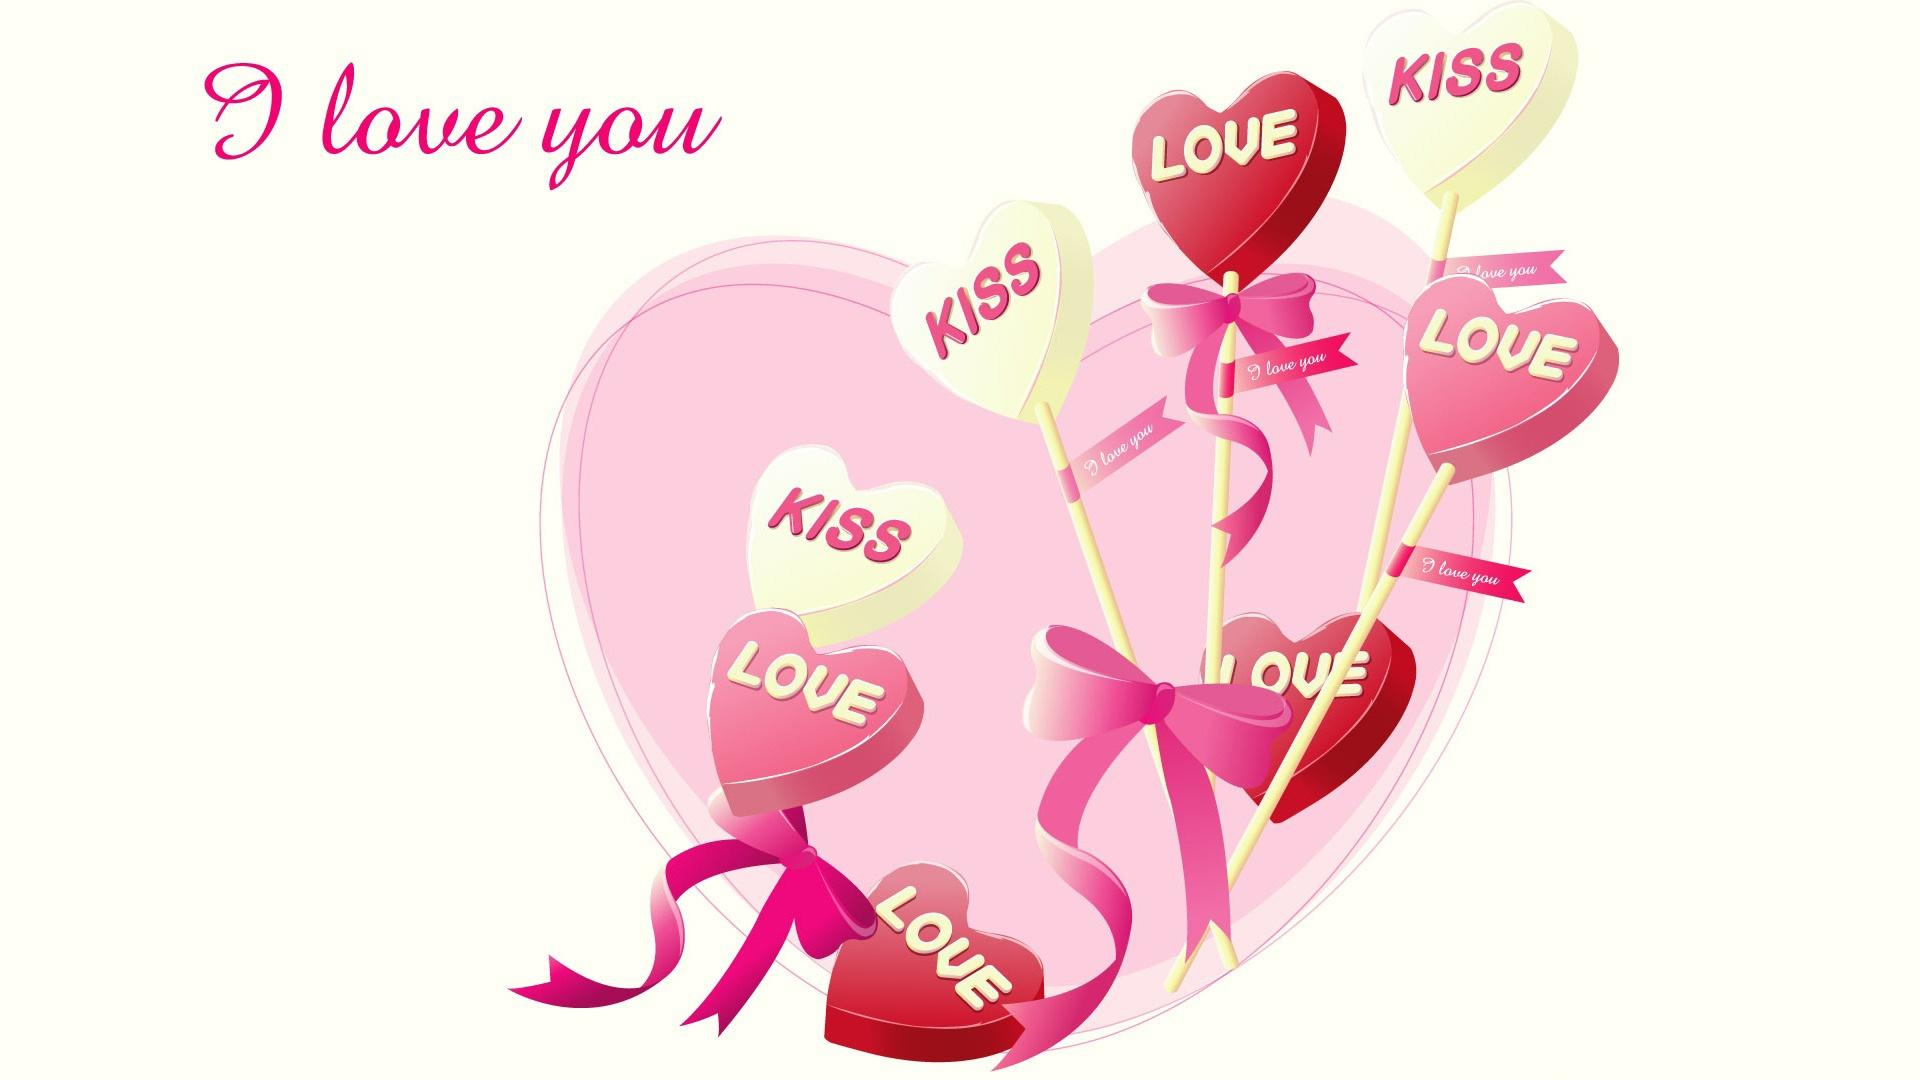 i love you heart hd wallpaper - Best Wallpapers .